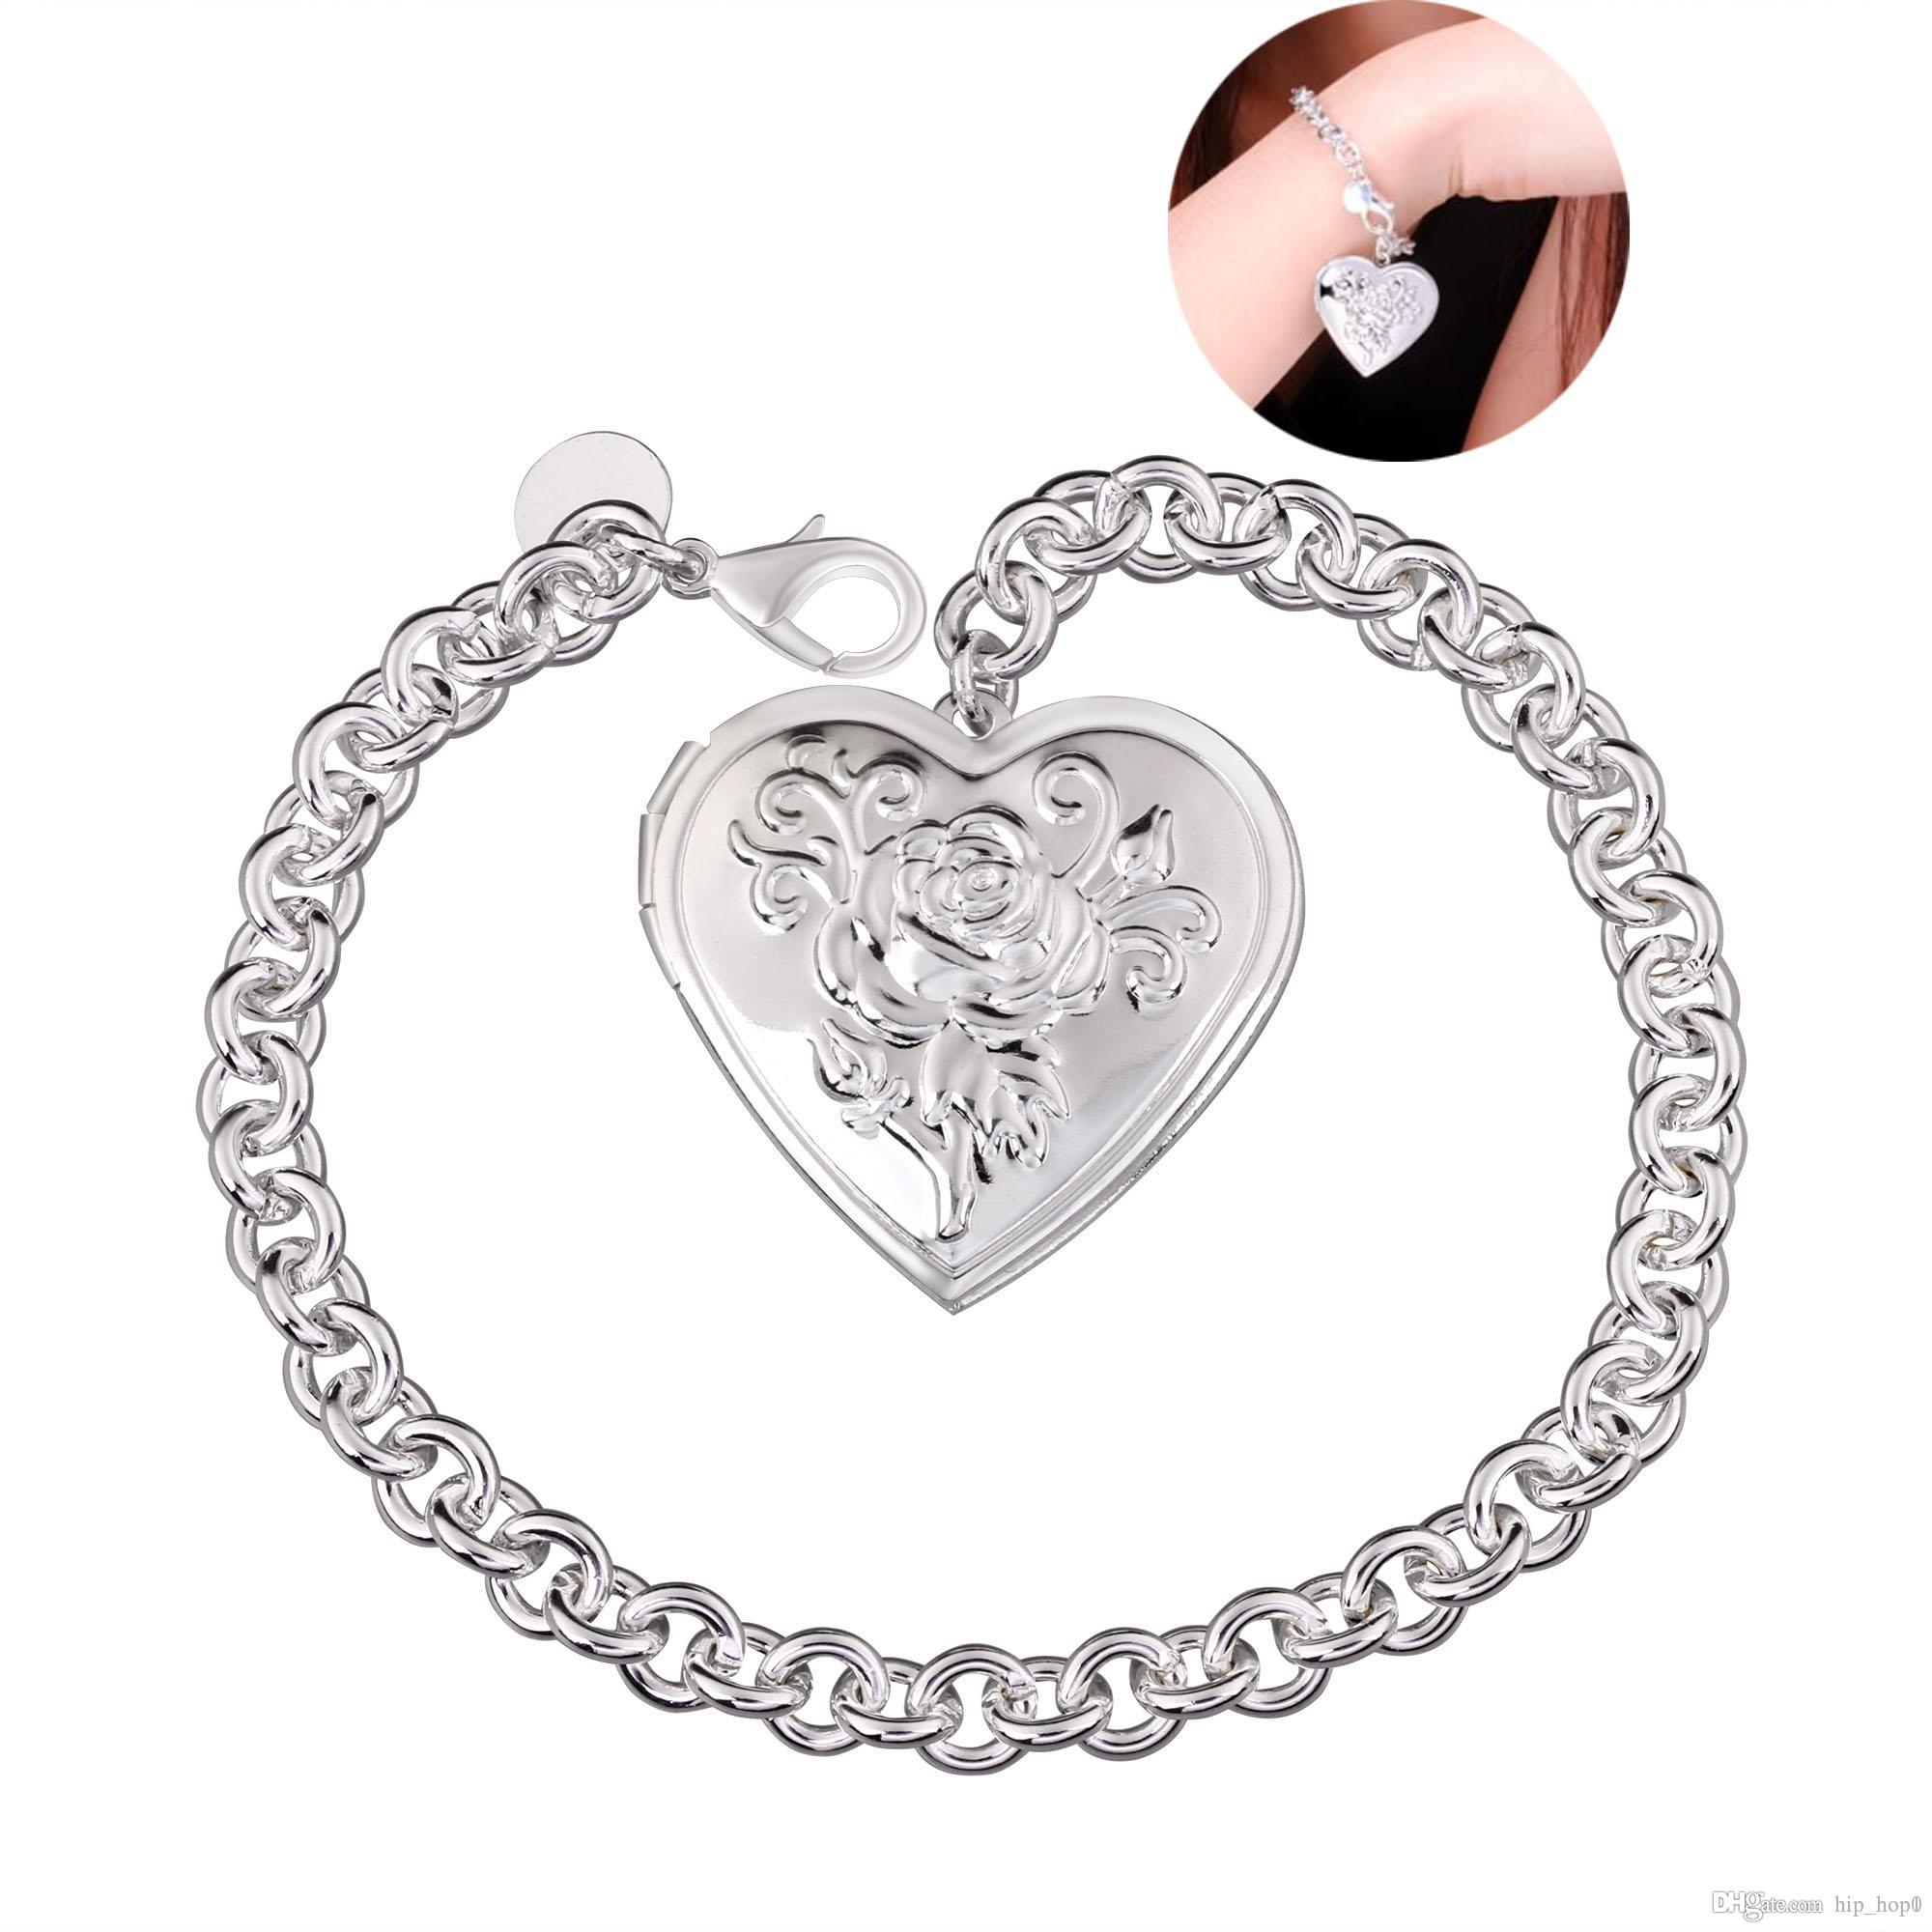 jewelry locket heart bracelet embellished gallery alexander mcqueen lyst